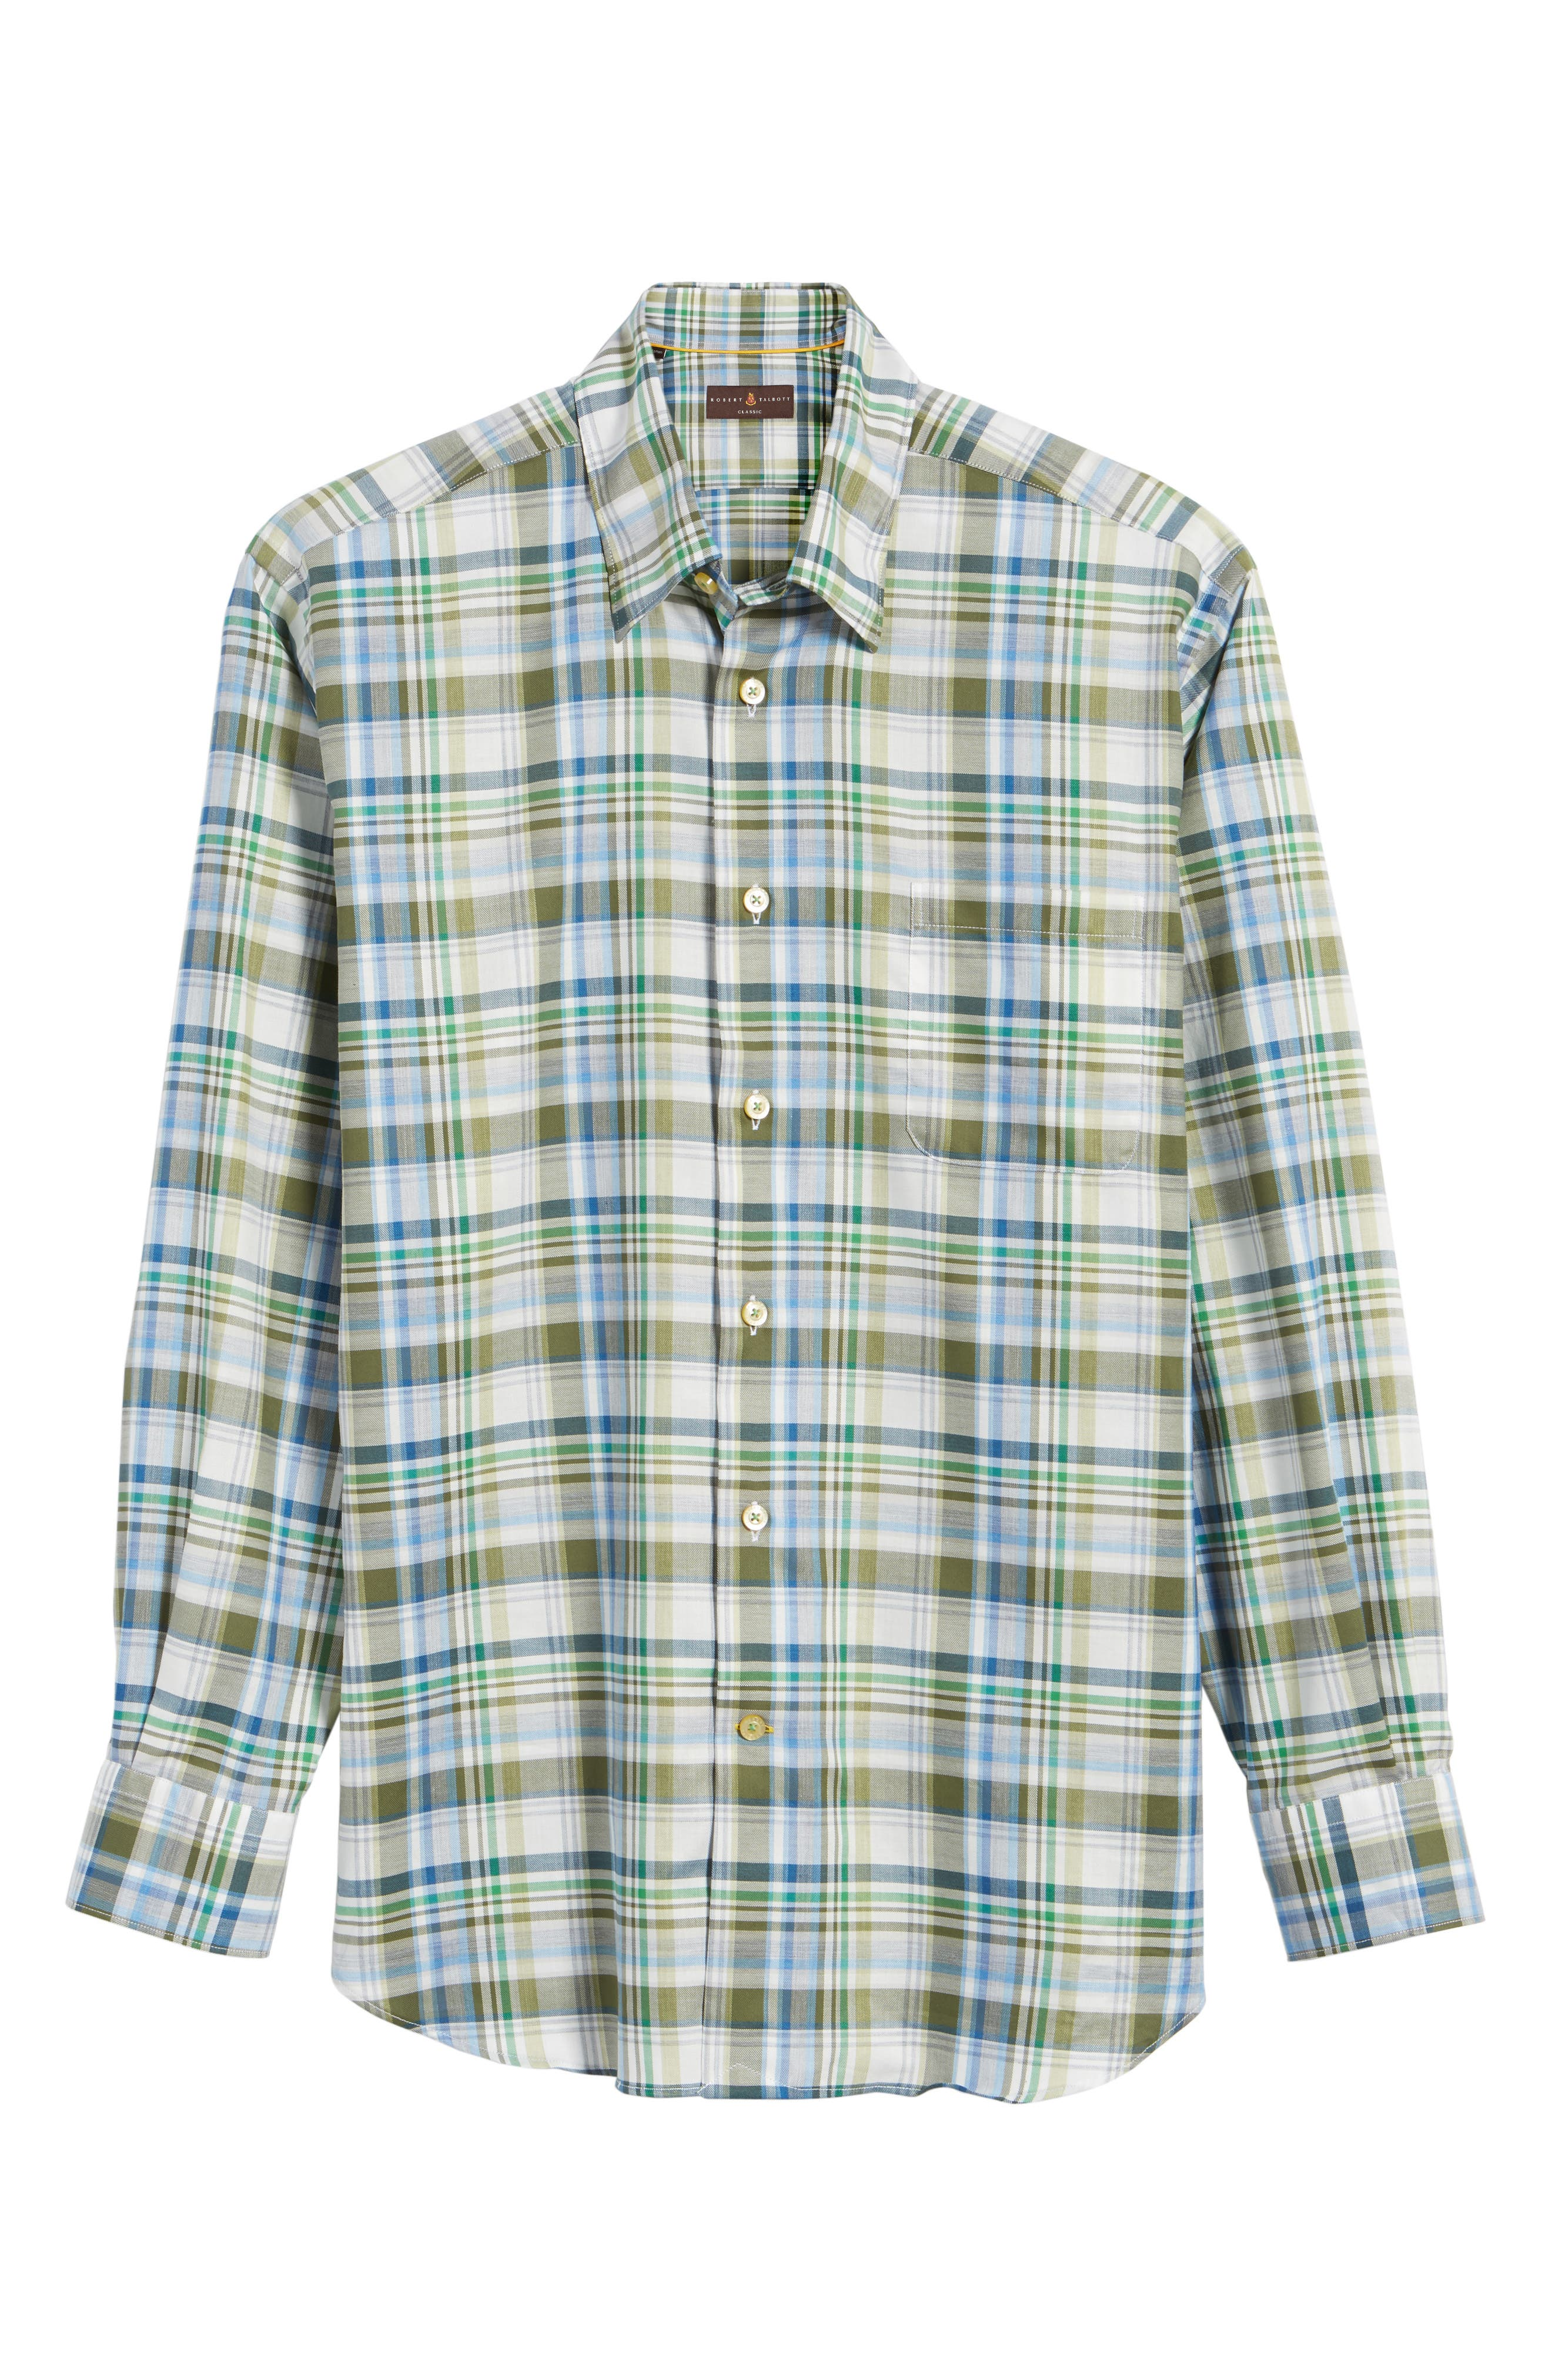 Anderson Classic Fit Plaid Micro Twill Sport Shirt,                             Alternate thumbnail 6, color,                             Green